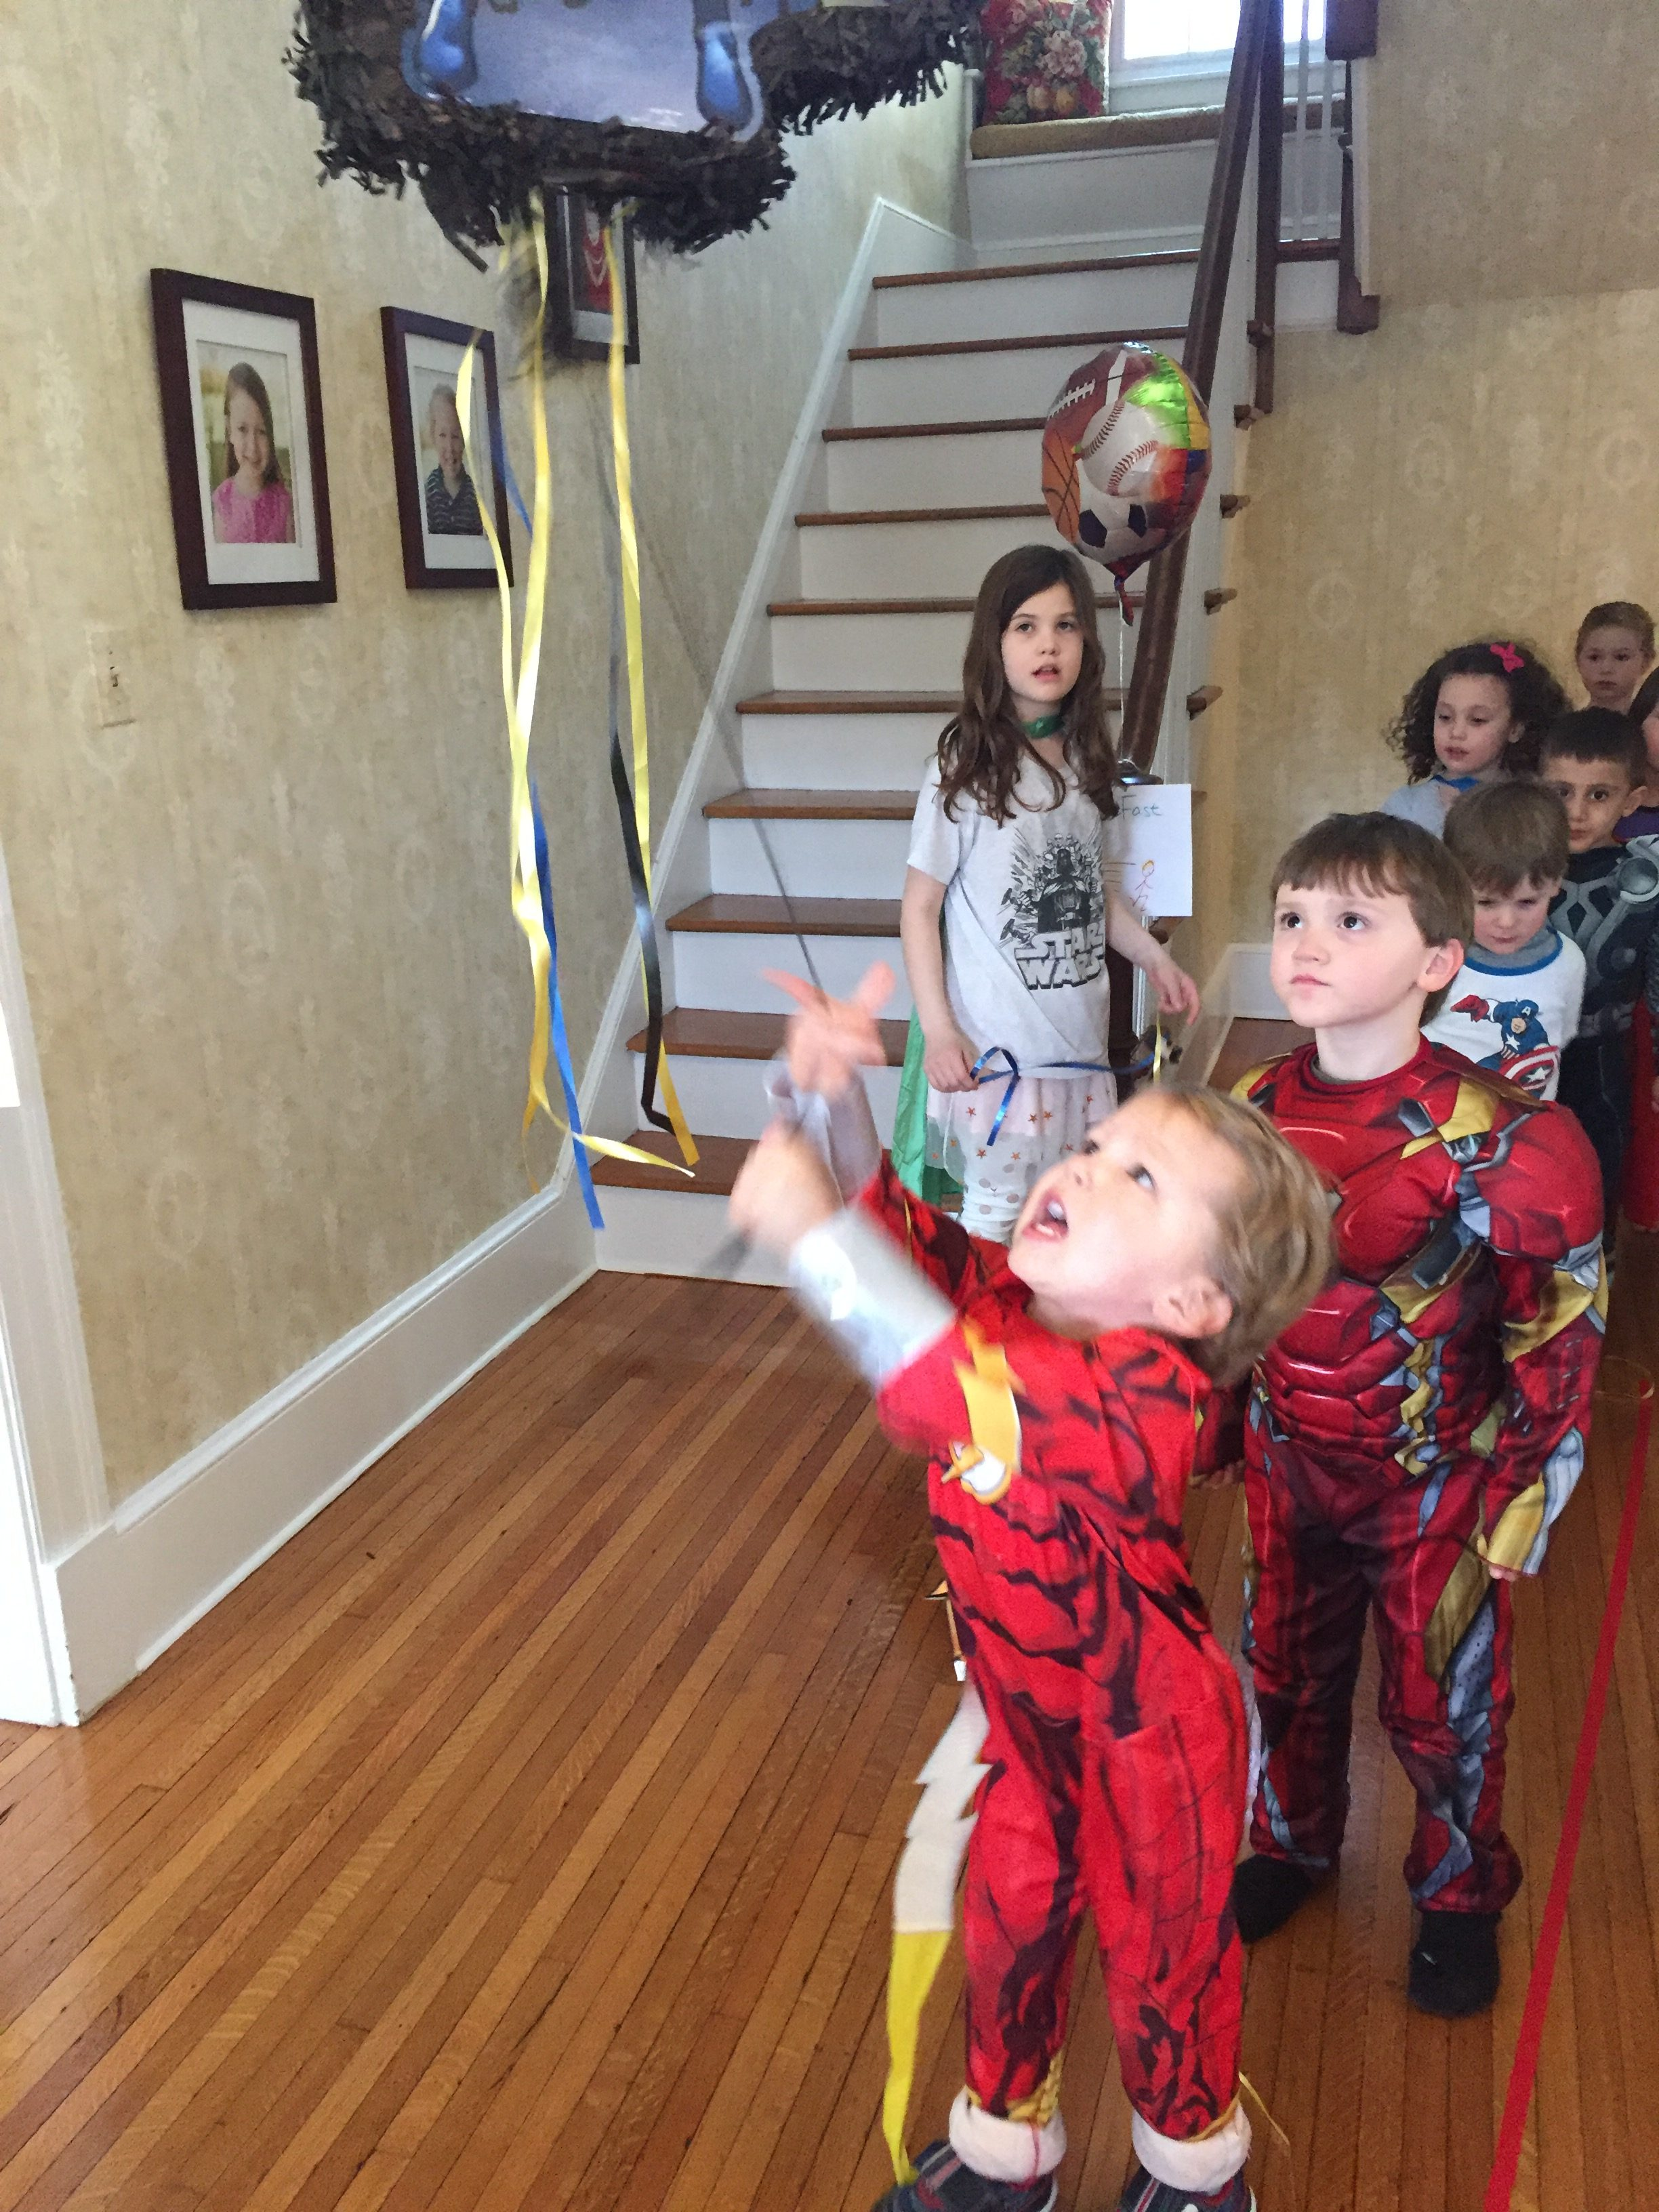 Look at those muscles pull the cord on the pinata! (The safer 2017 version of a pinata - no wooden bat)